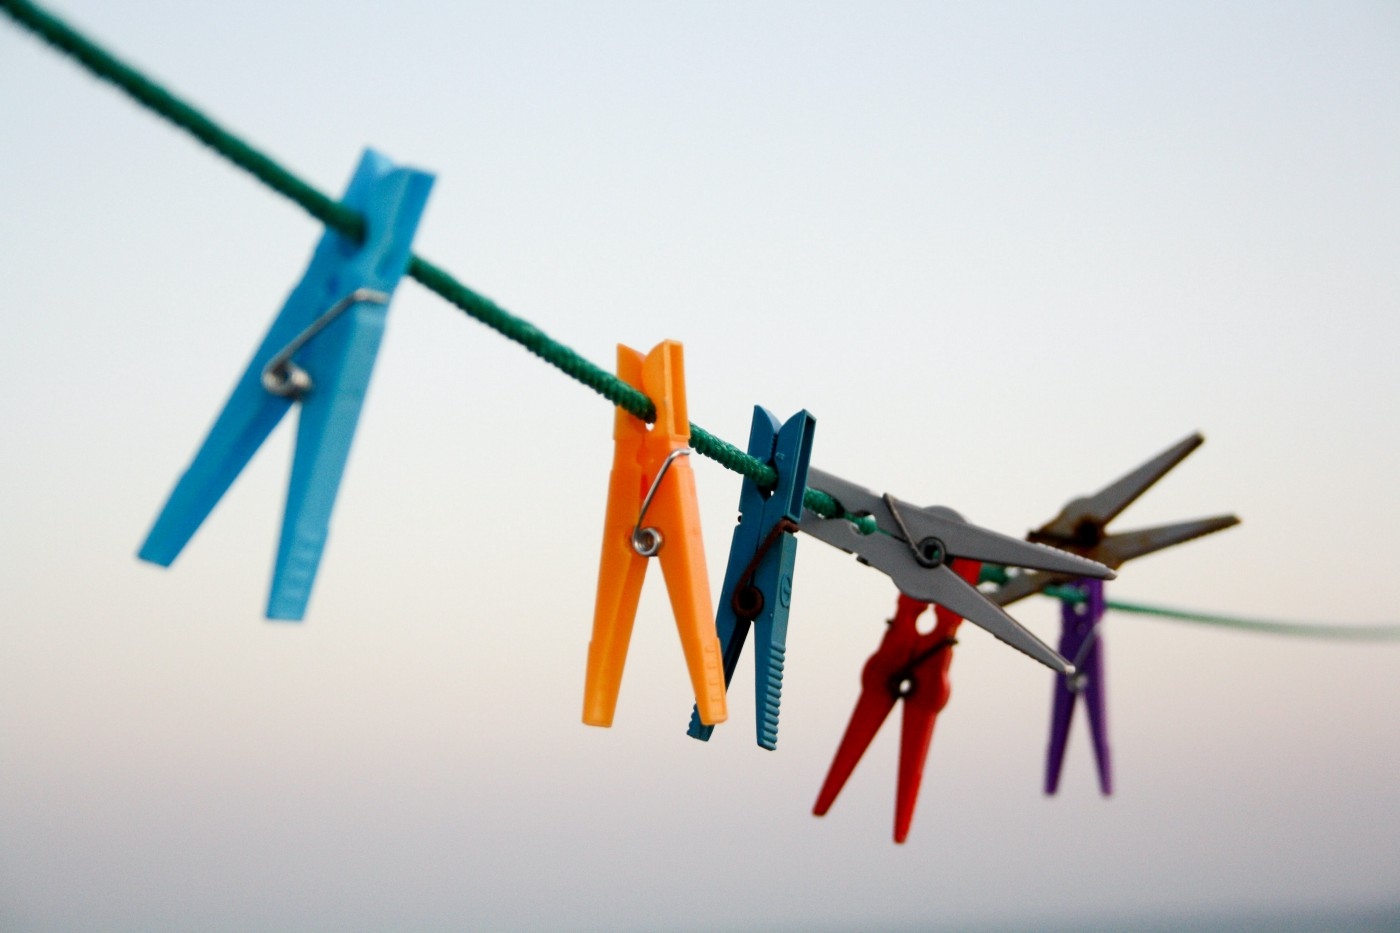 A clothesline with colorful pegs.